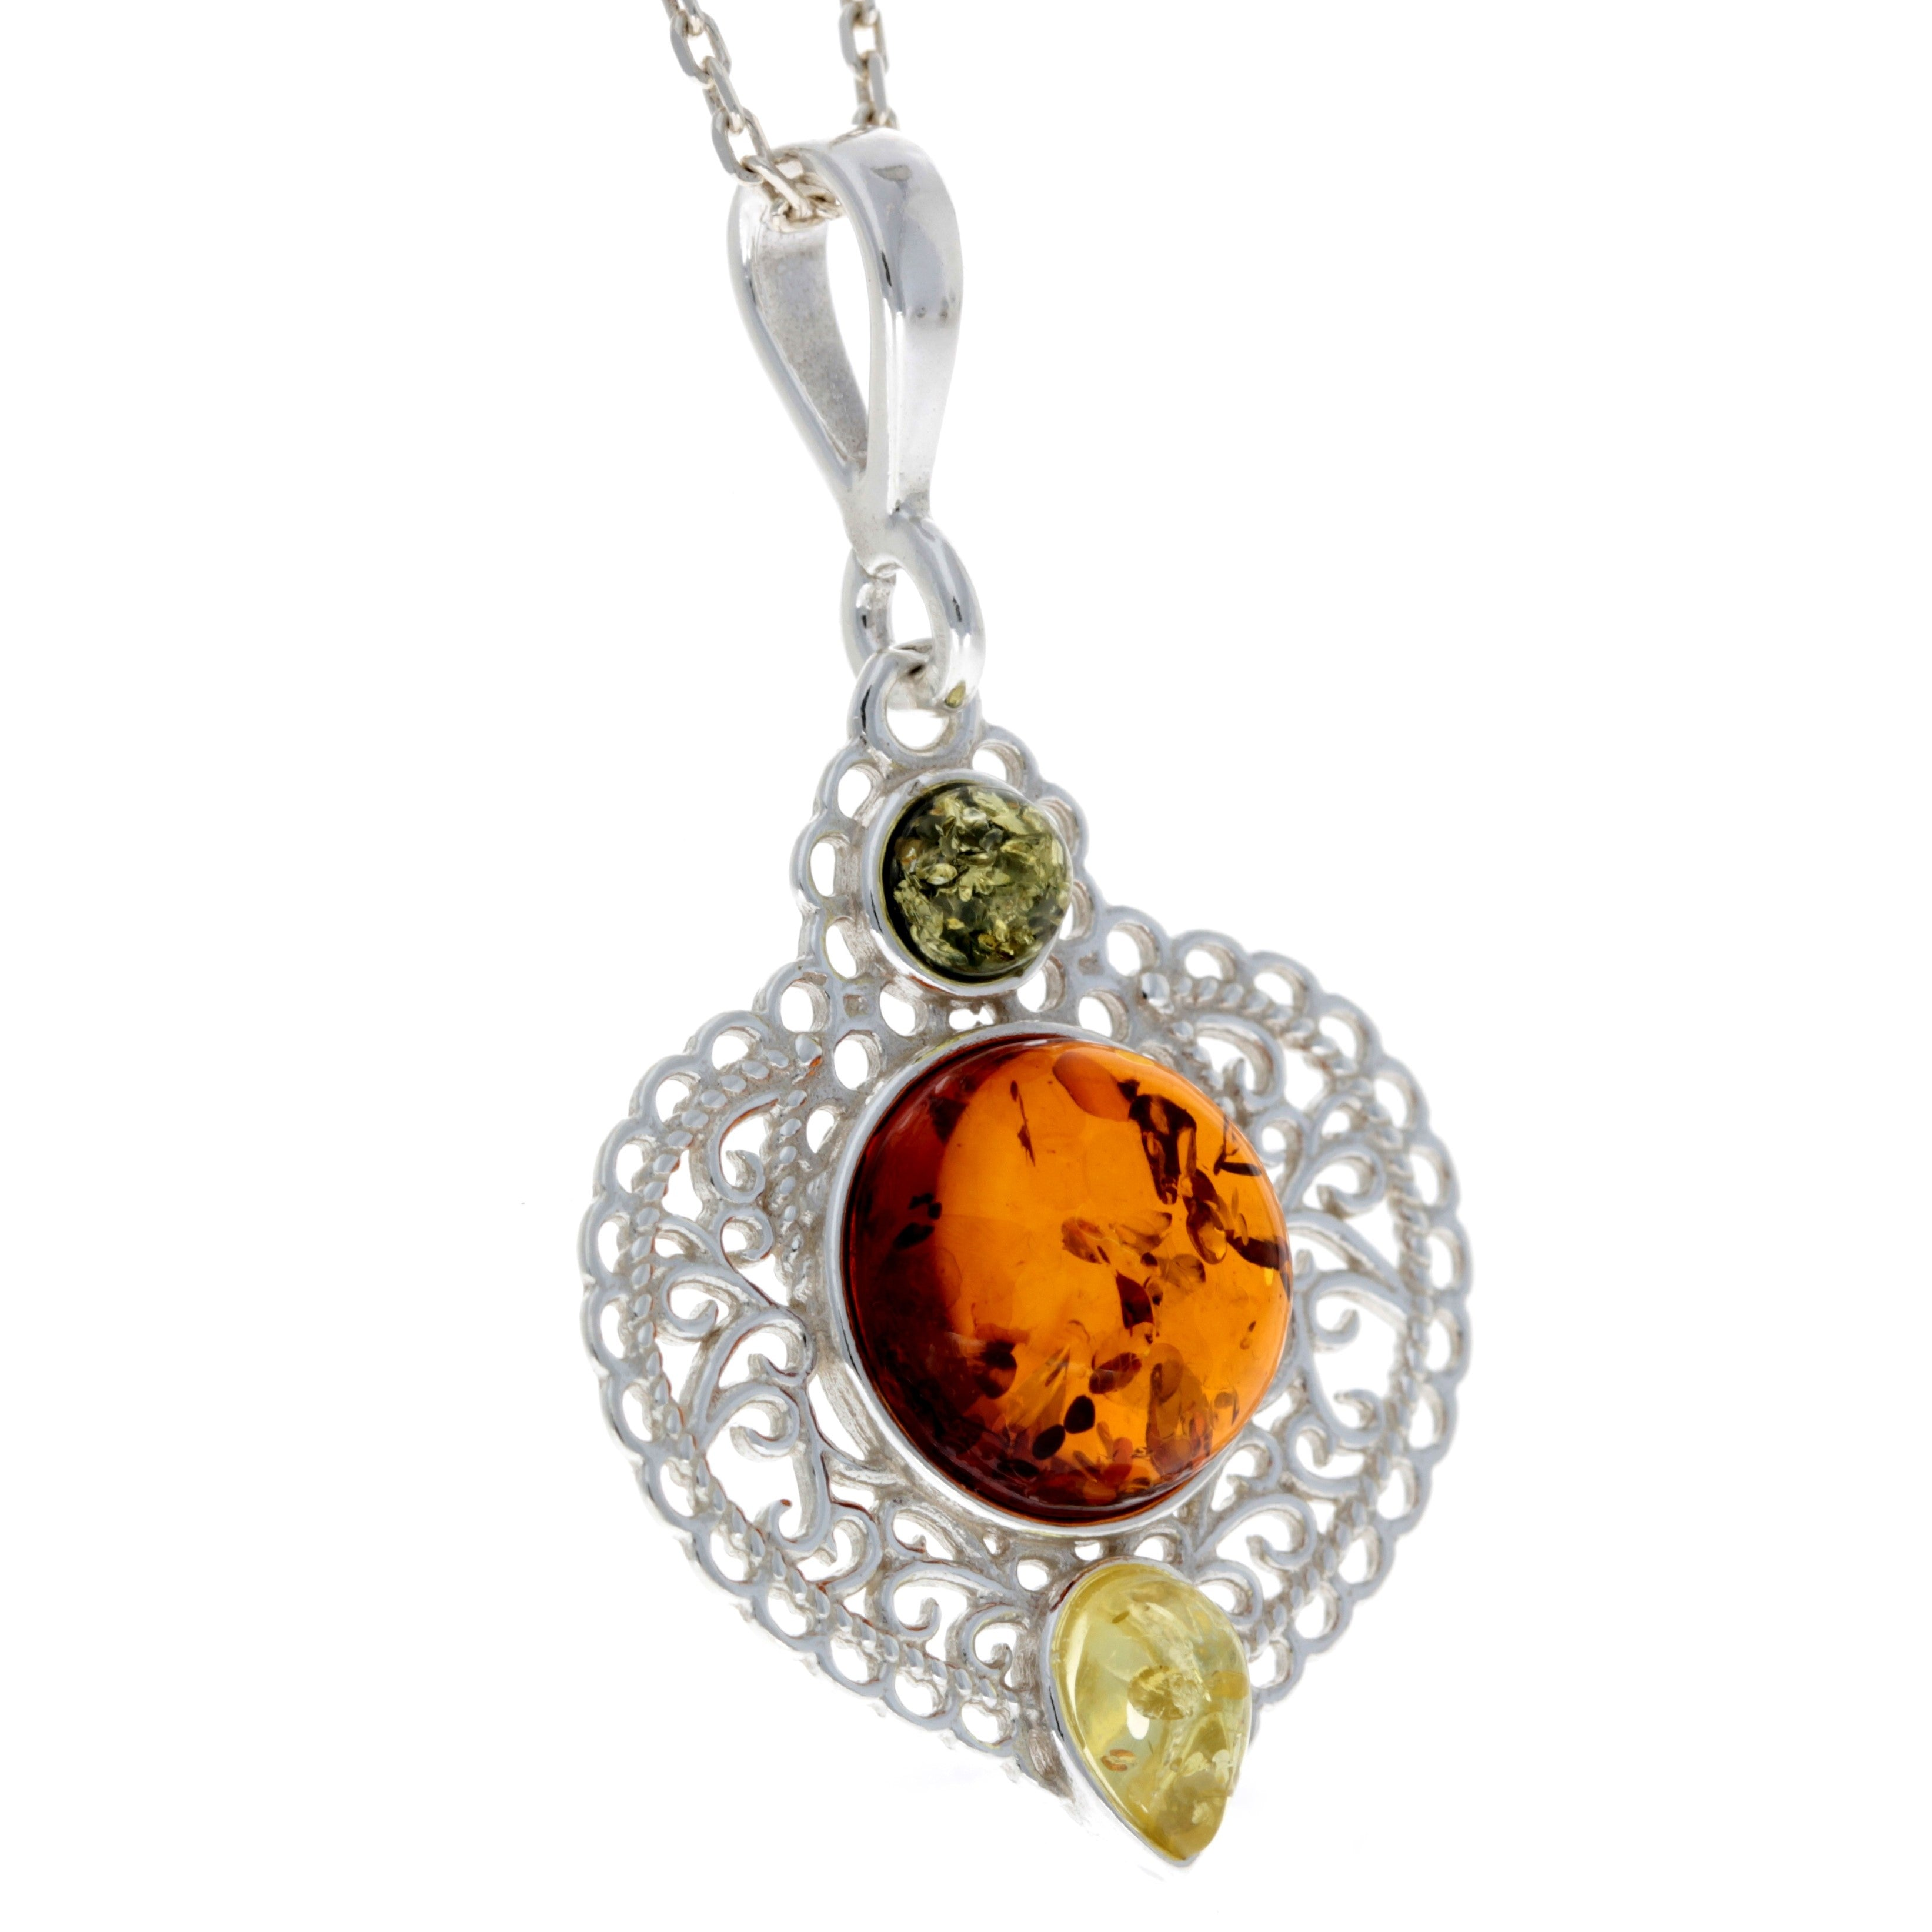 925 Sterling Silver & Baltic Amber Modern Pendant - M382